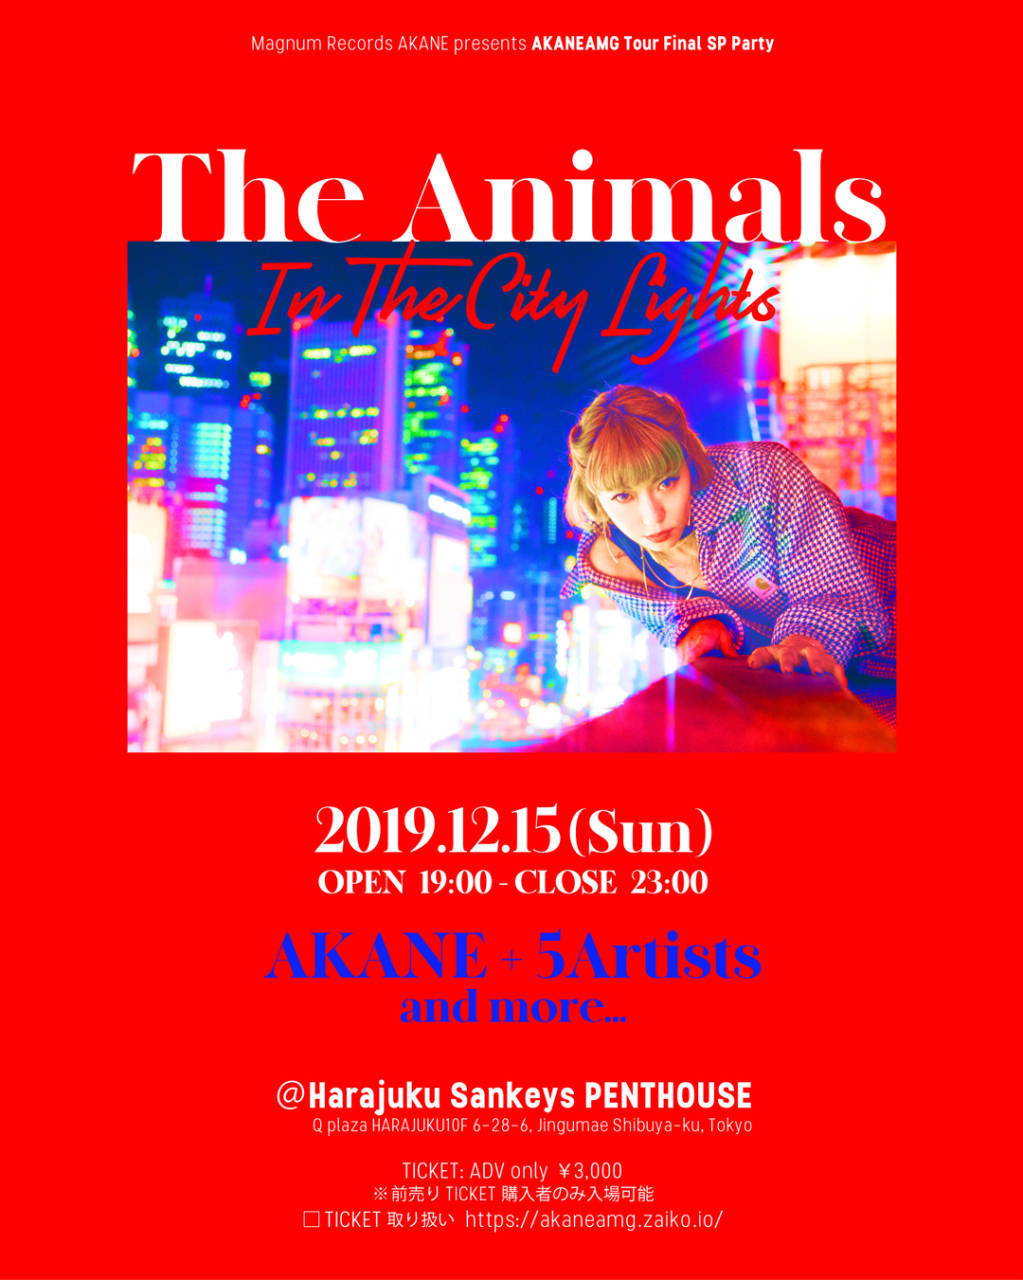 "Magnum Records AKANE presents ""The Animals In The City Lights"""